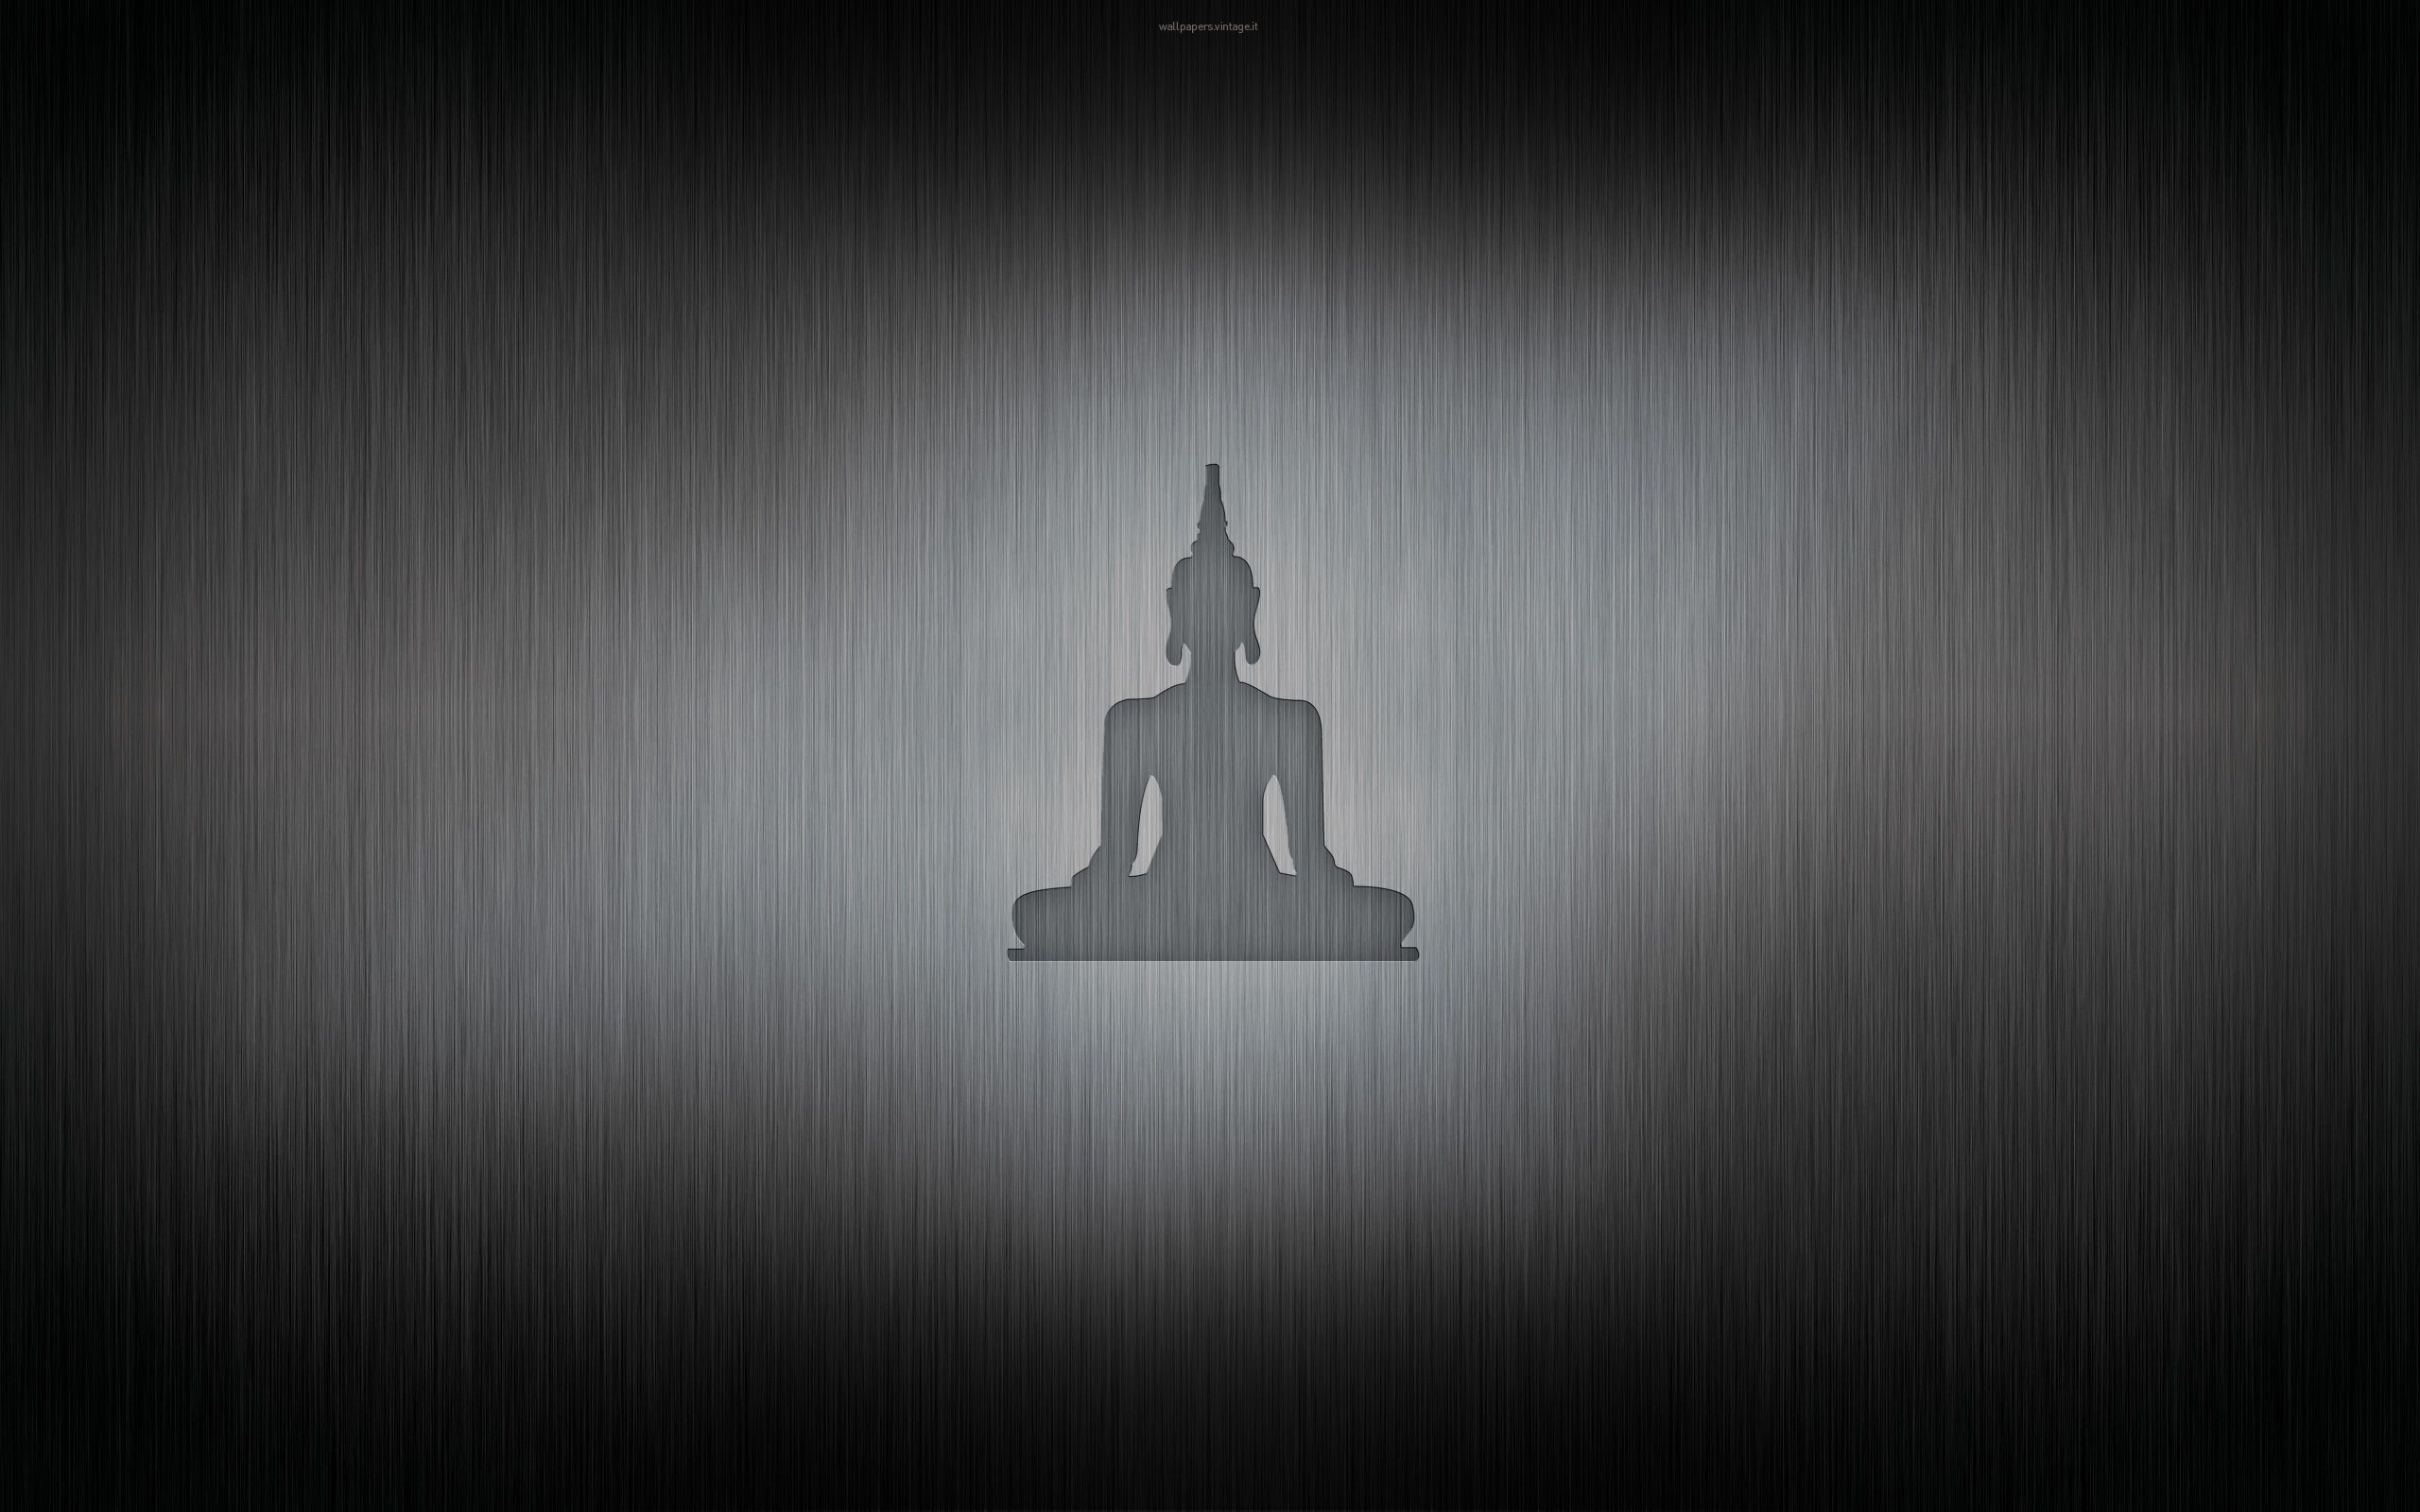 2560x1600 Buddha wallpaper - Free Desktop HD iPad iPhone wallpapers